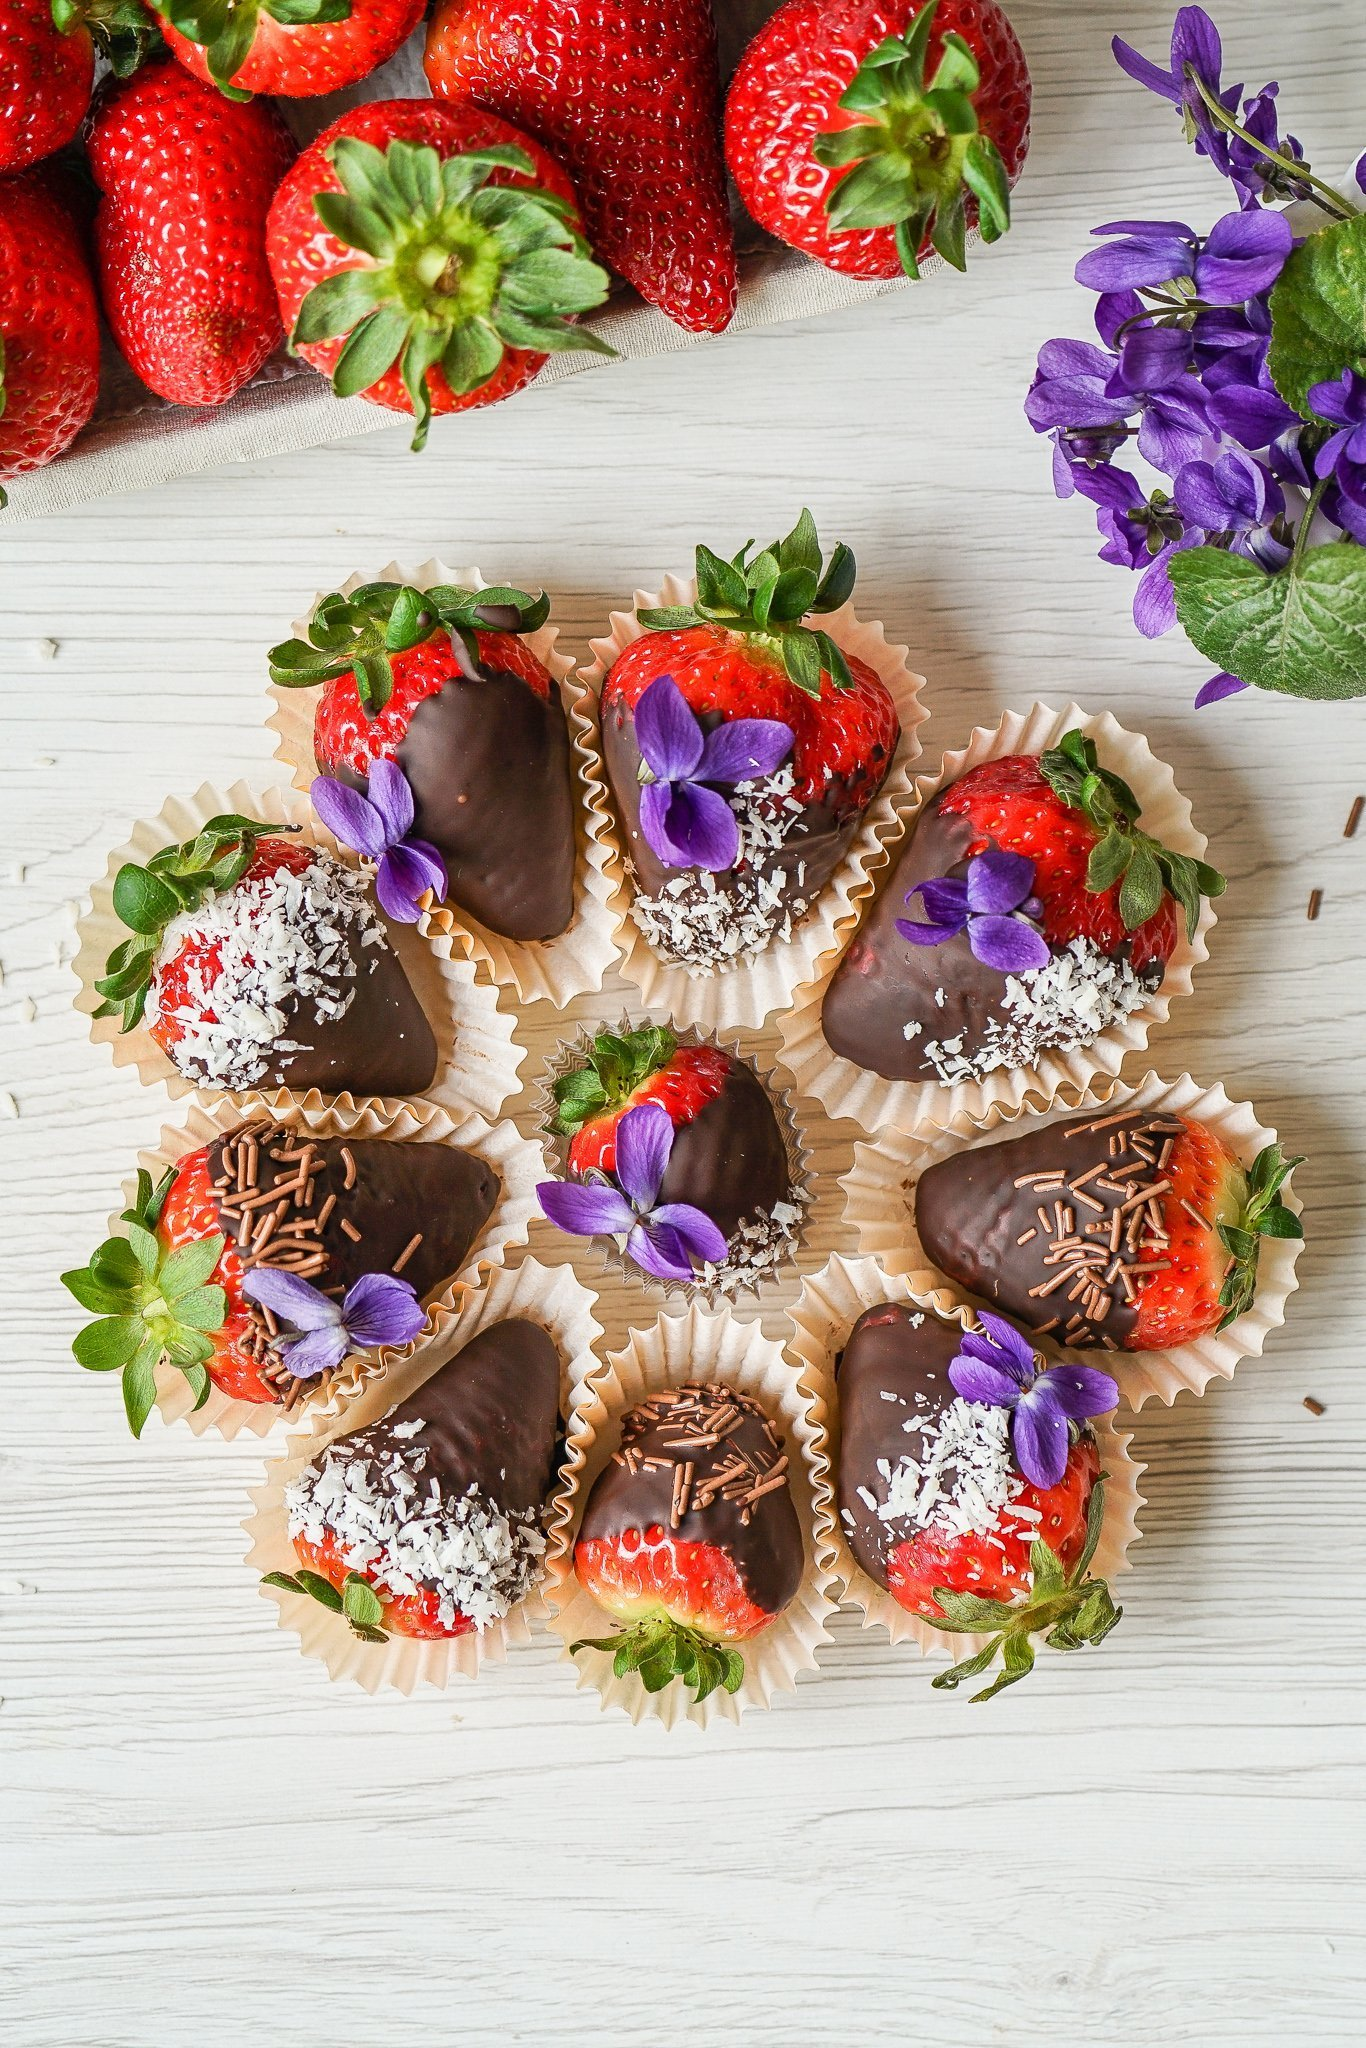 Easy Paleo Chocolate Covered Strawberries